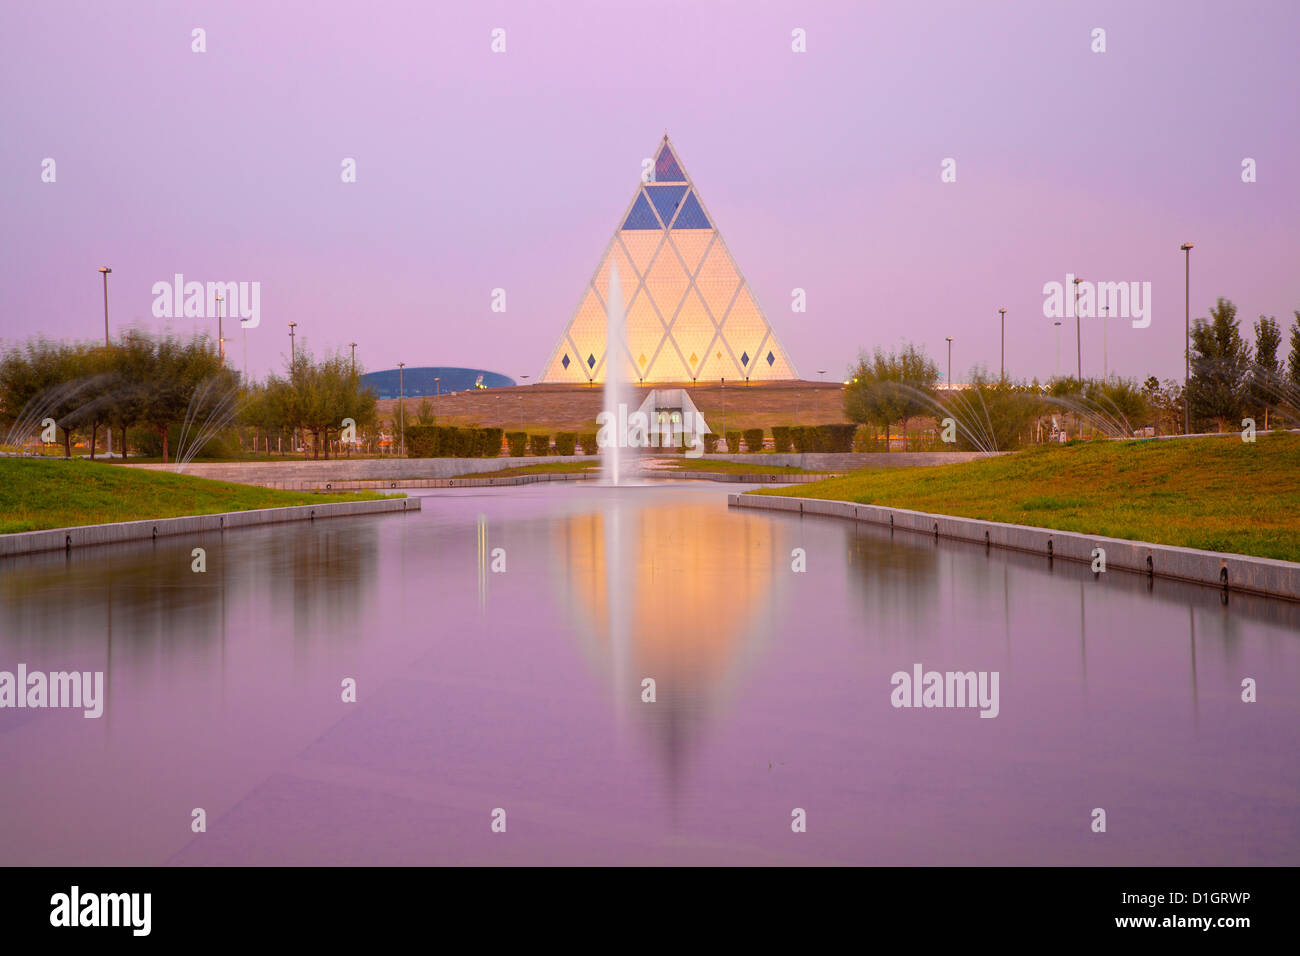 Palace of Peace and Reconciliation pyramid designed by Sir Norman Foster, Astana, Kazakhstan, Central Asia, Asia - Stock Image